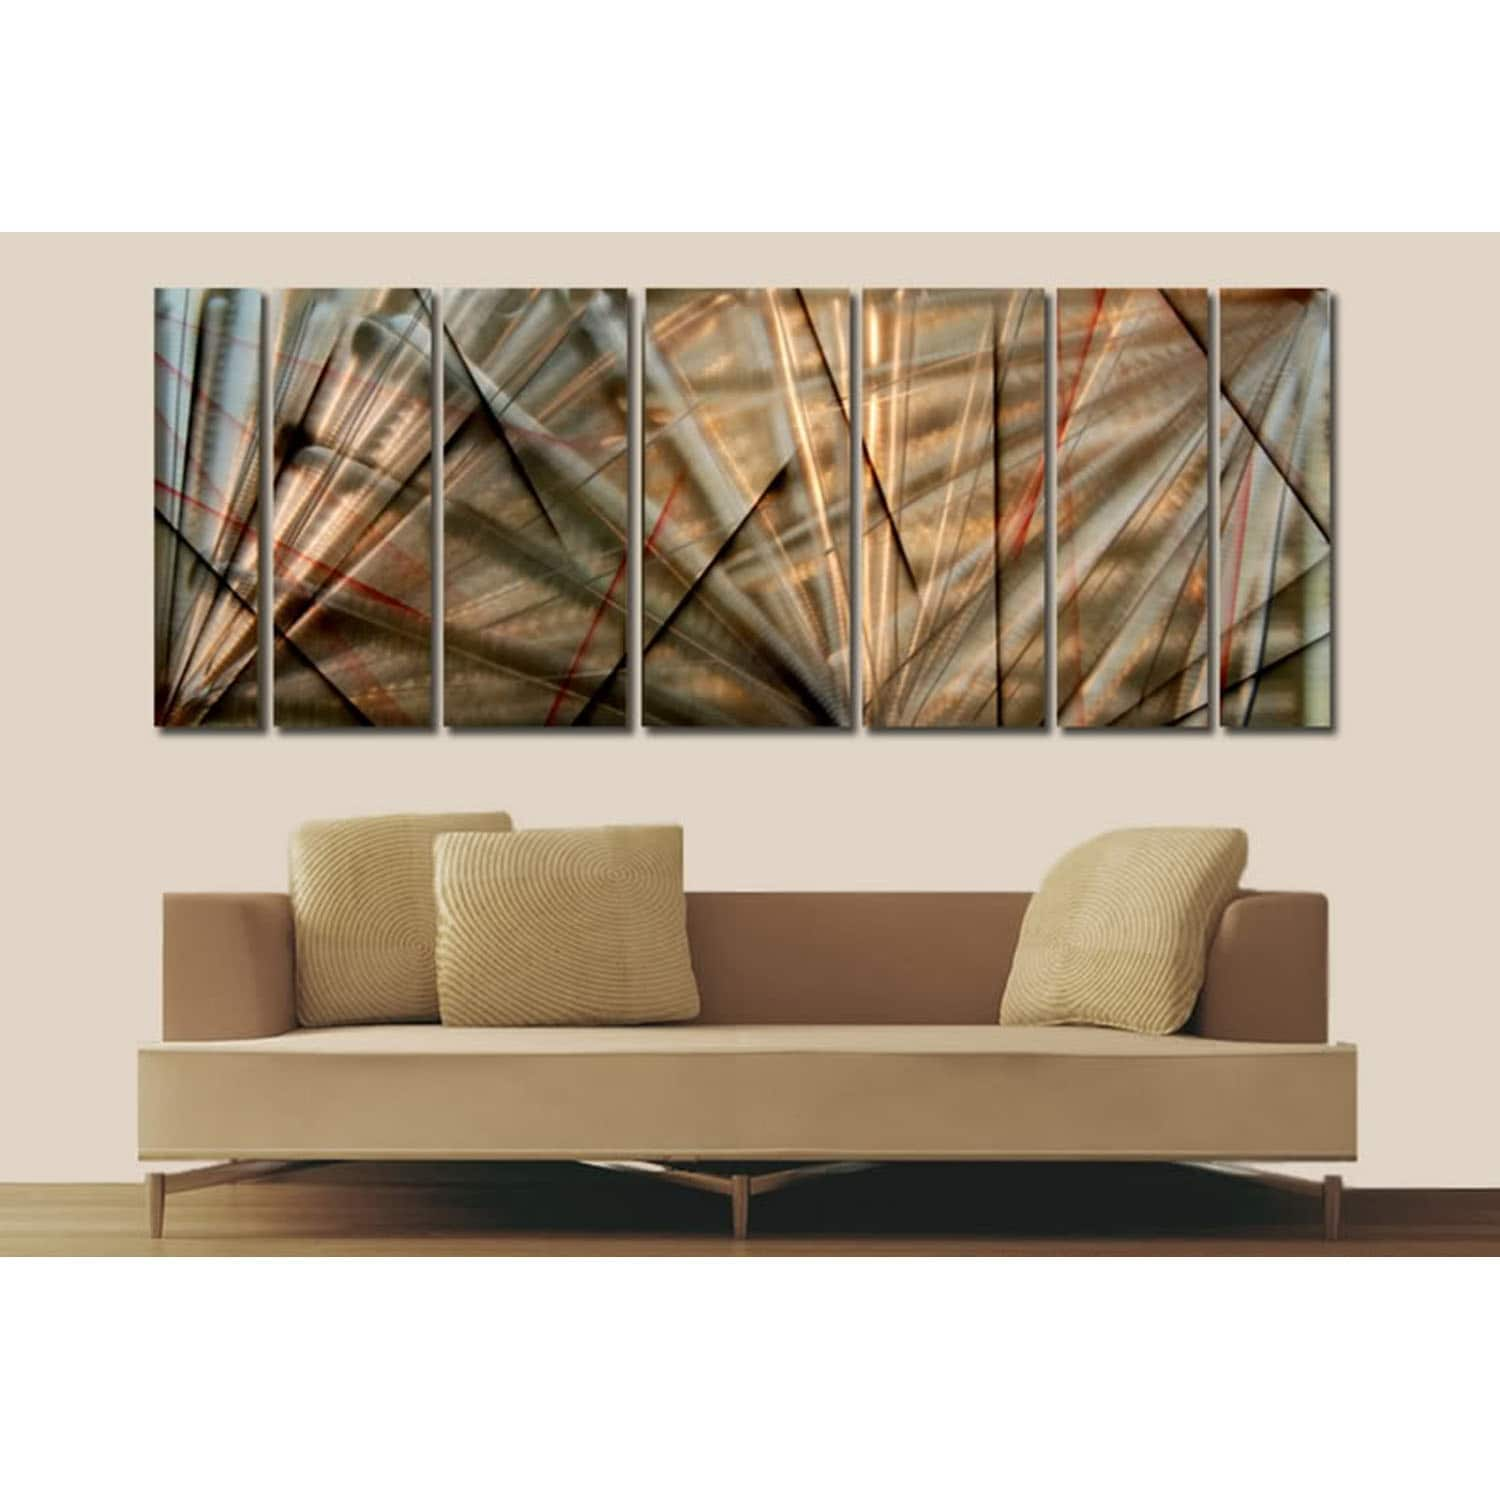 Statements2000 Gold Red Earth Tones Abstract Metal Wall Art Panels By Jon Allen Meteor Eclipse On Free Shipping Today